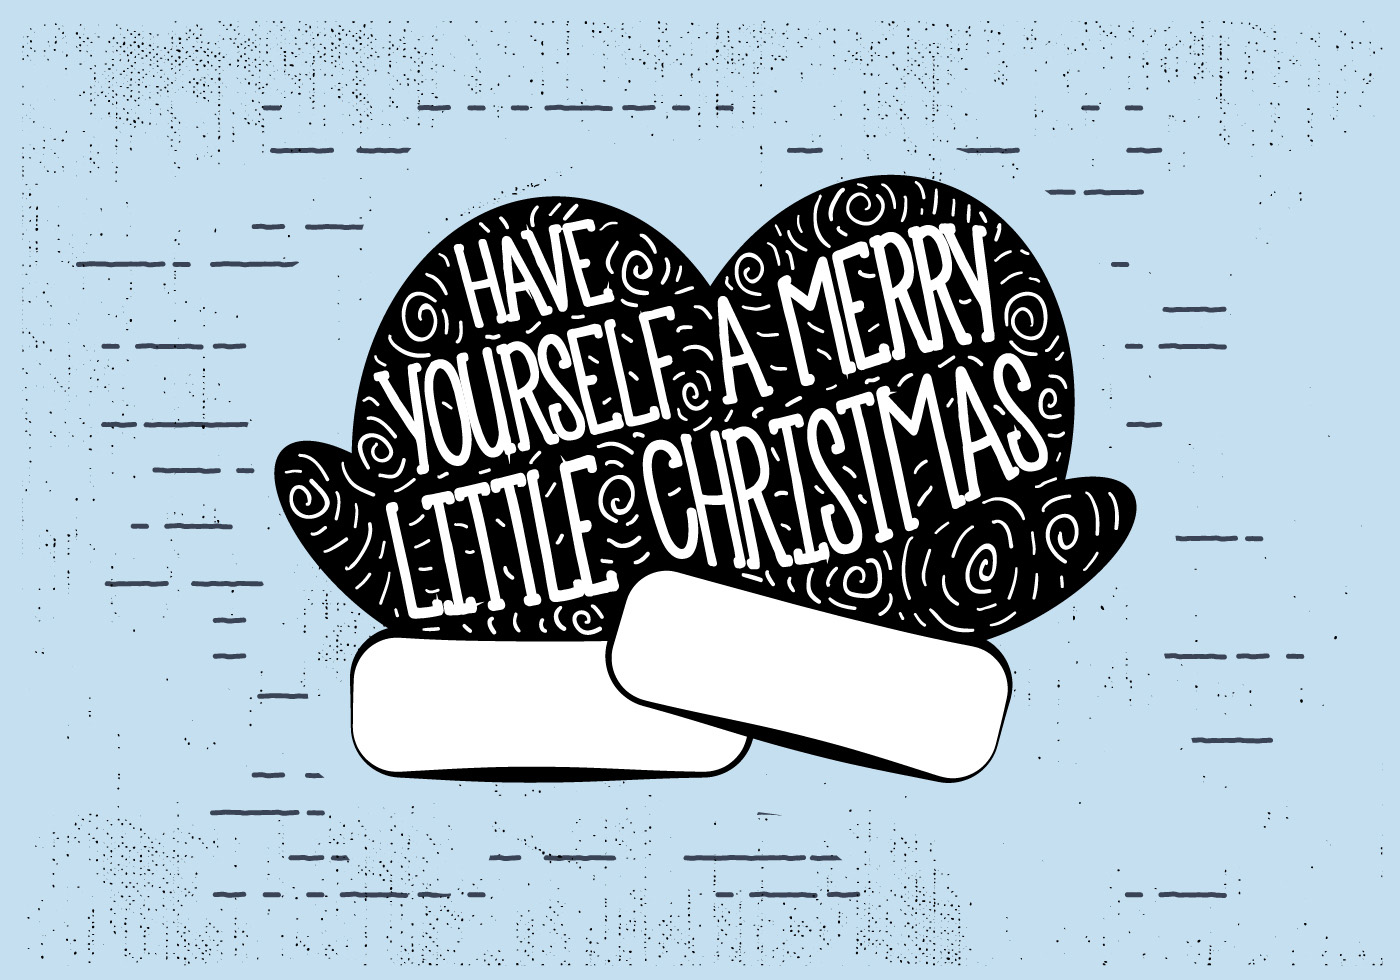 Free Vintage Hand Drawn Christmas Card Background - Download Free ...